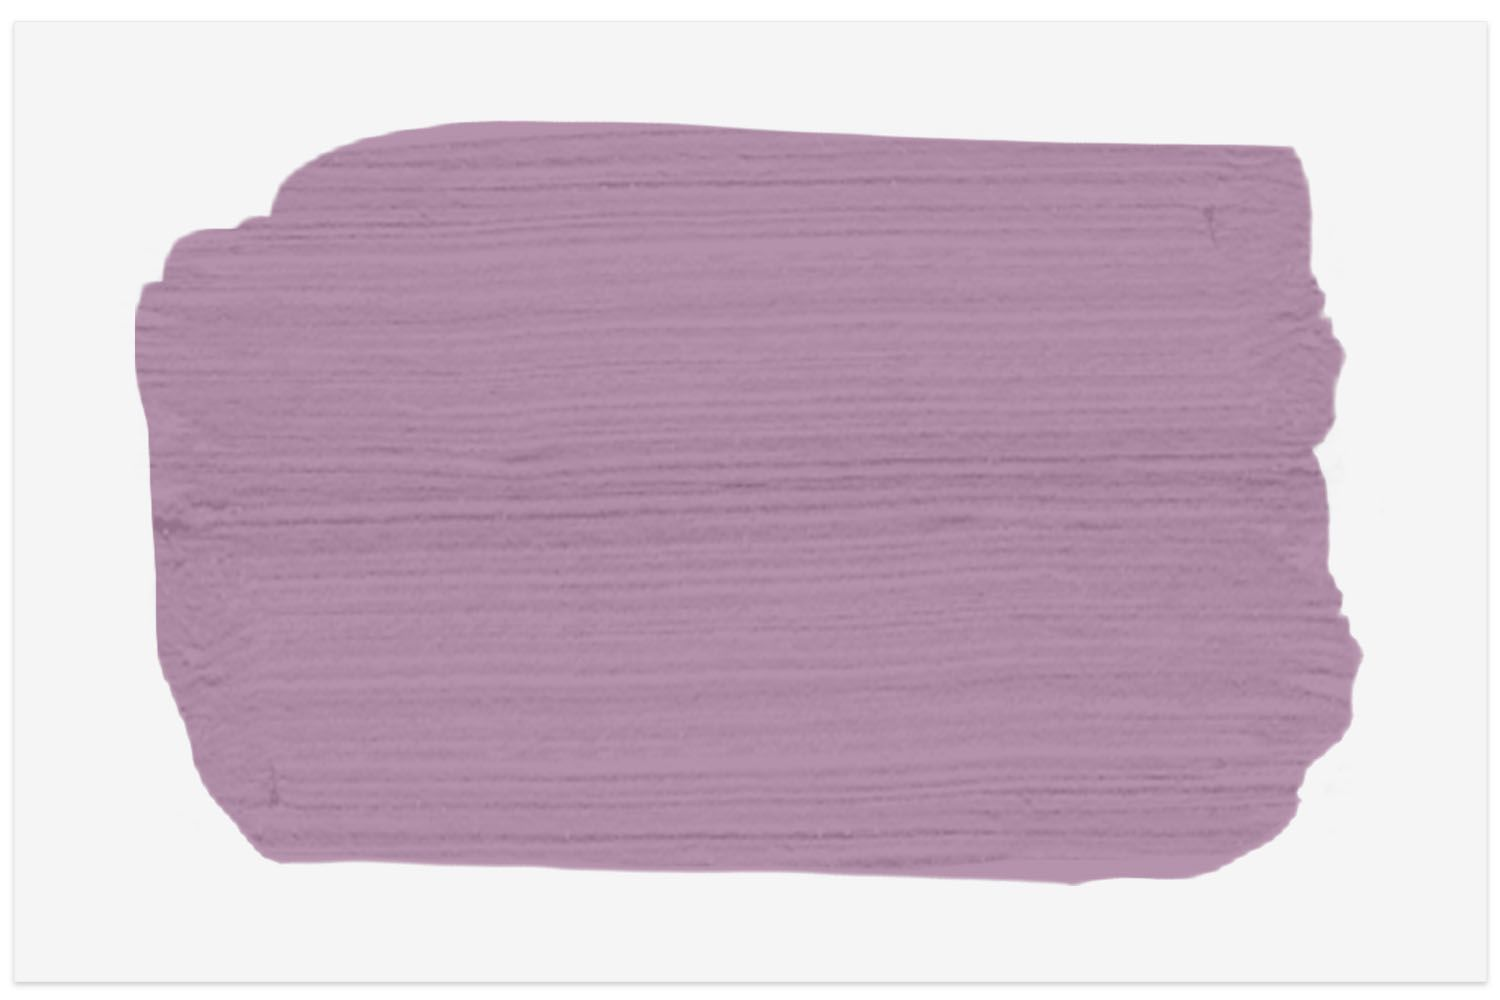 7440 UP paint swatch from Pantone